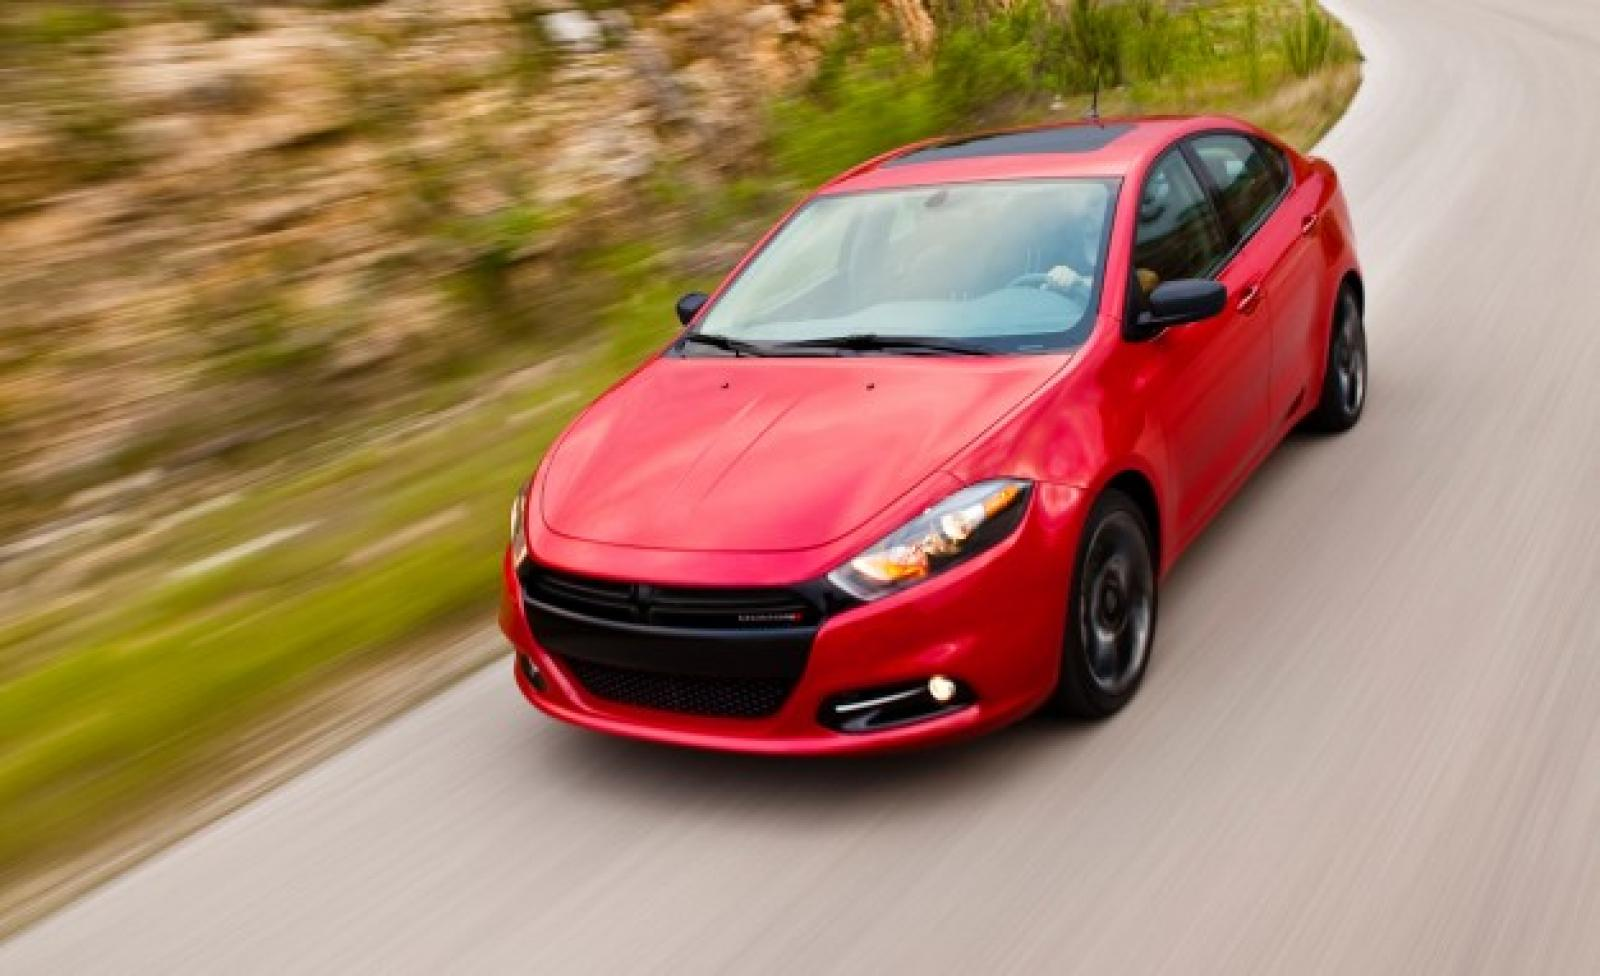 2015 dodge dart information and photos zombiedrive. Cars Review. Best American Auto & Cars Review